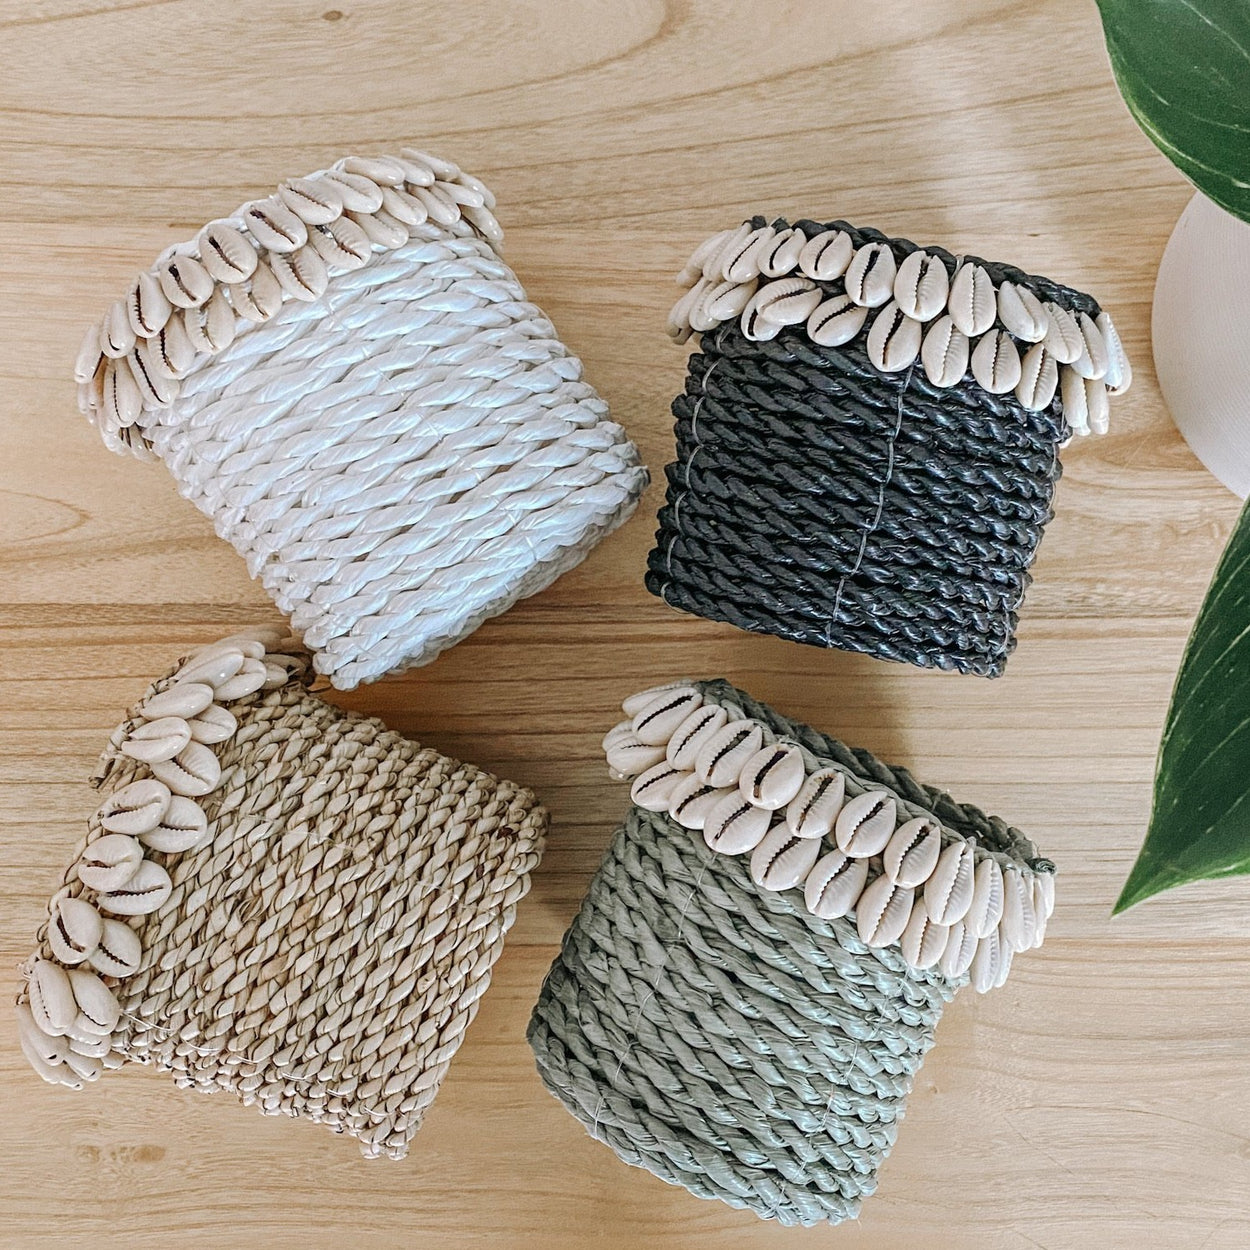 Mini Cowrie Shell Seagrass Basket